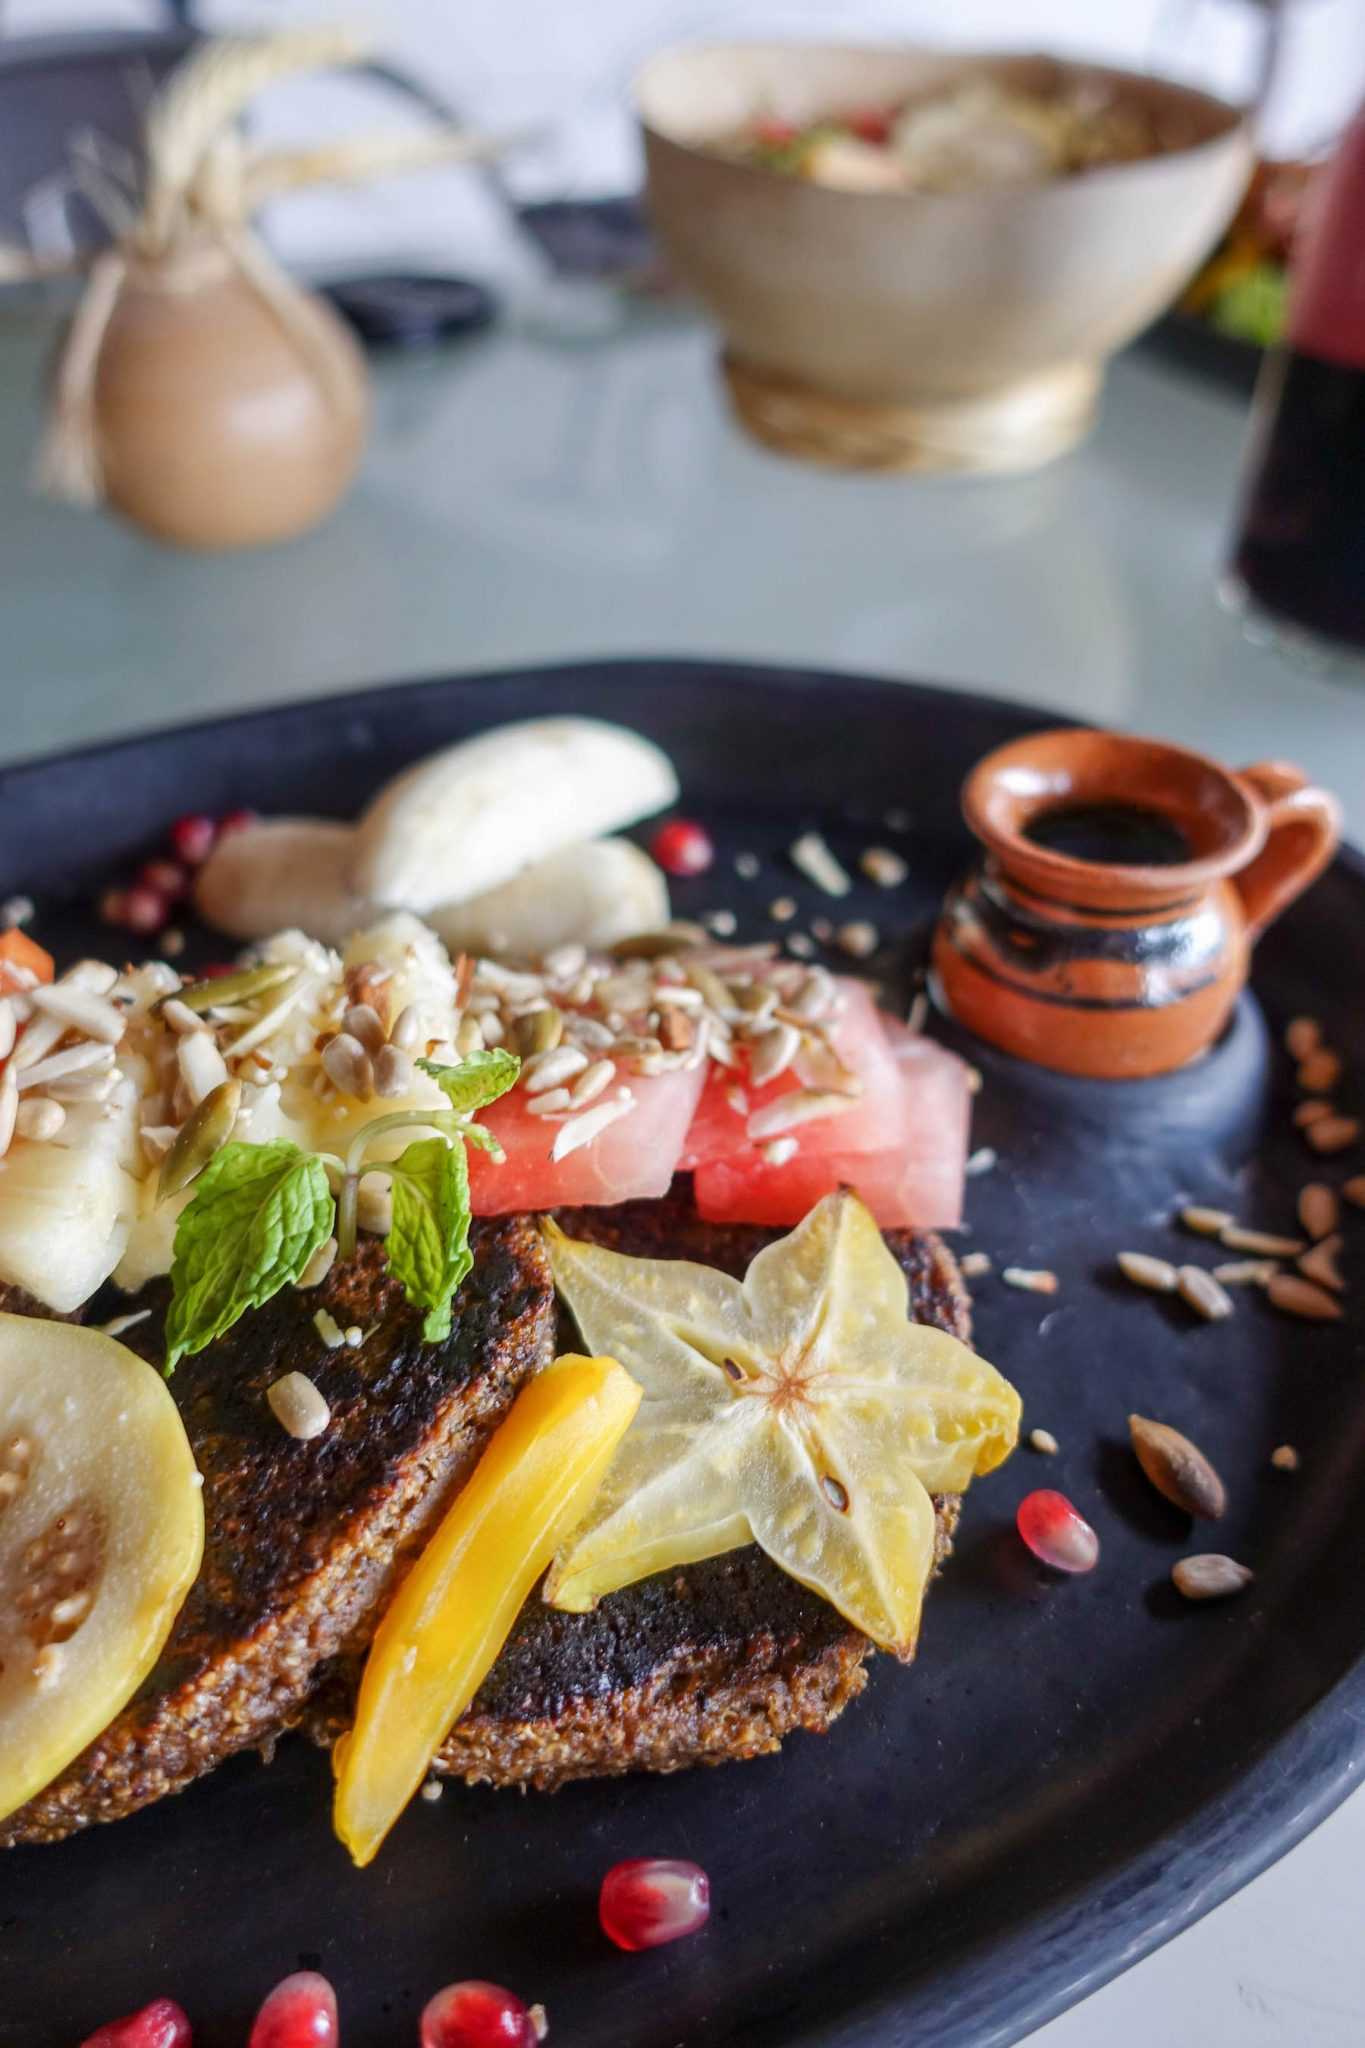 suelovesnyc_Tulum_glutenfrei_essen_glutenfreie_pancakes_farm_to_table_tulum